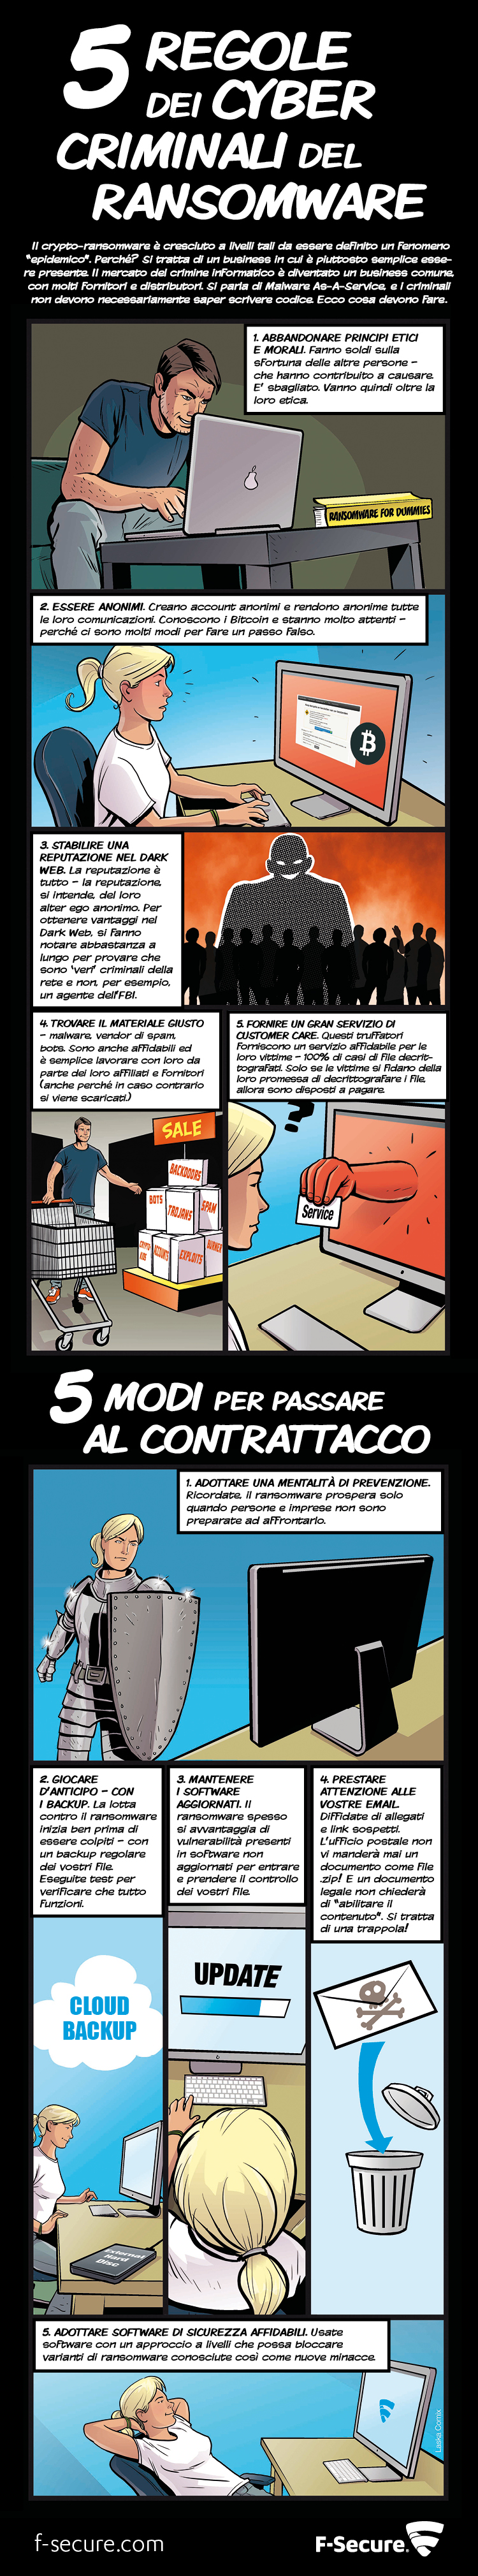 Infografica F-Secure